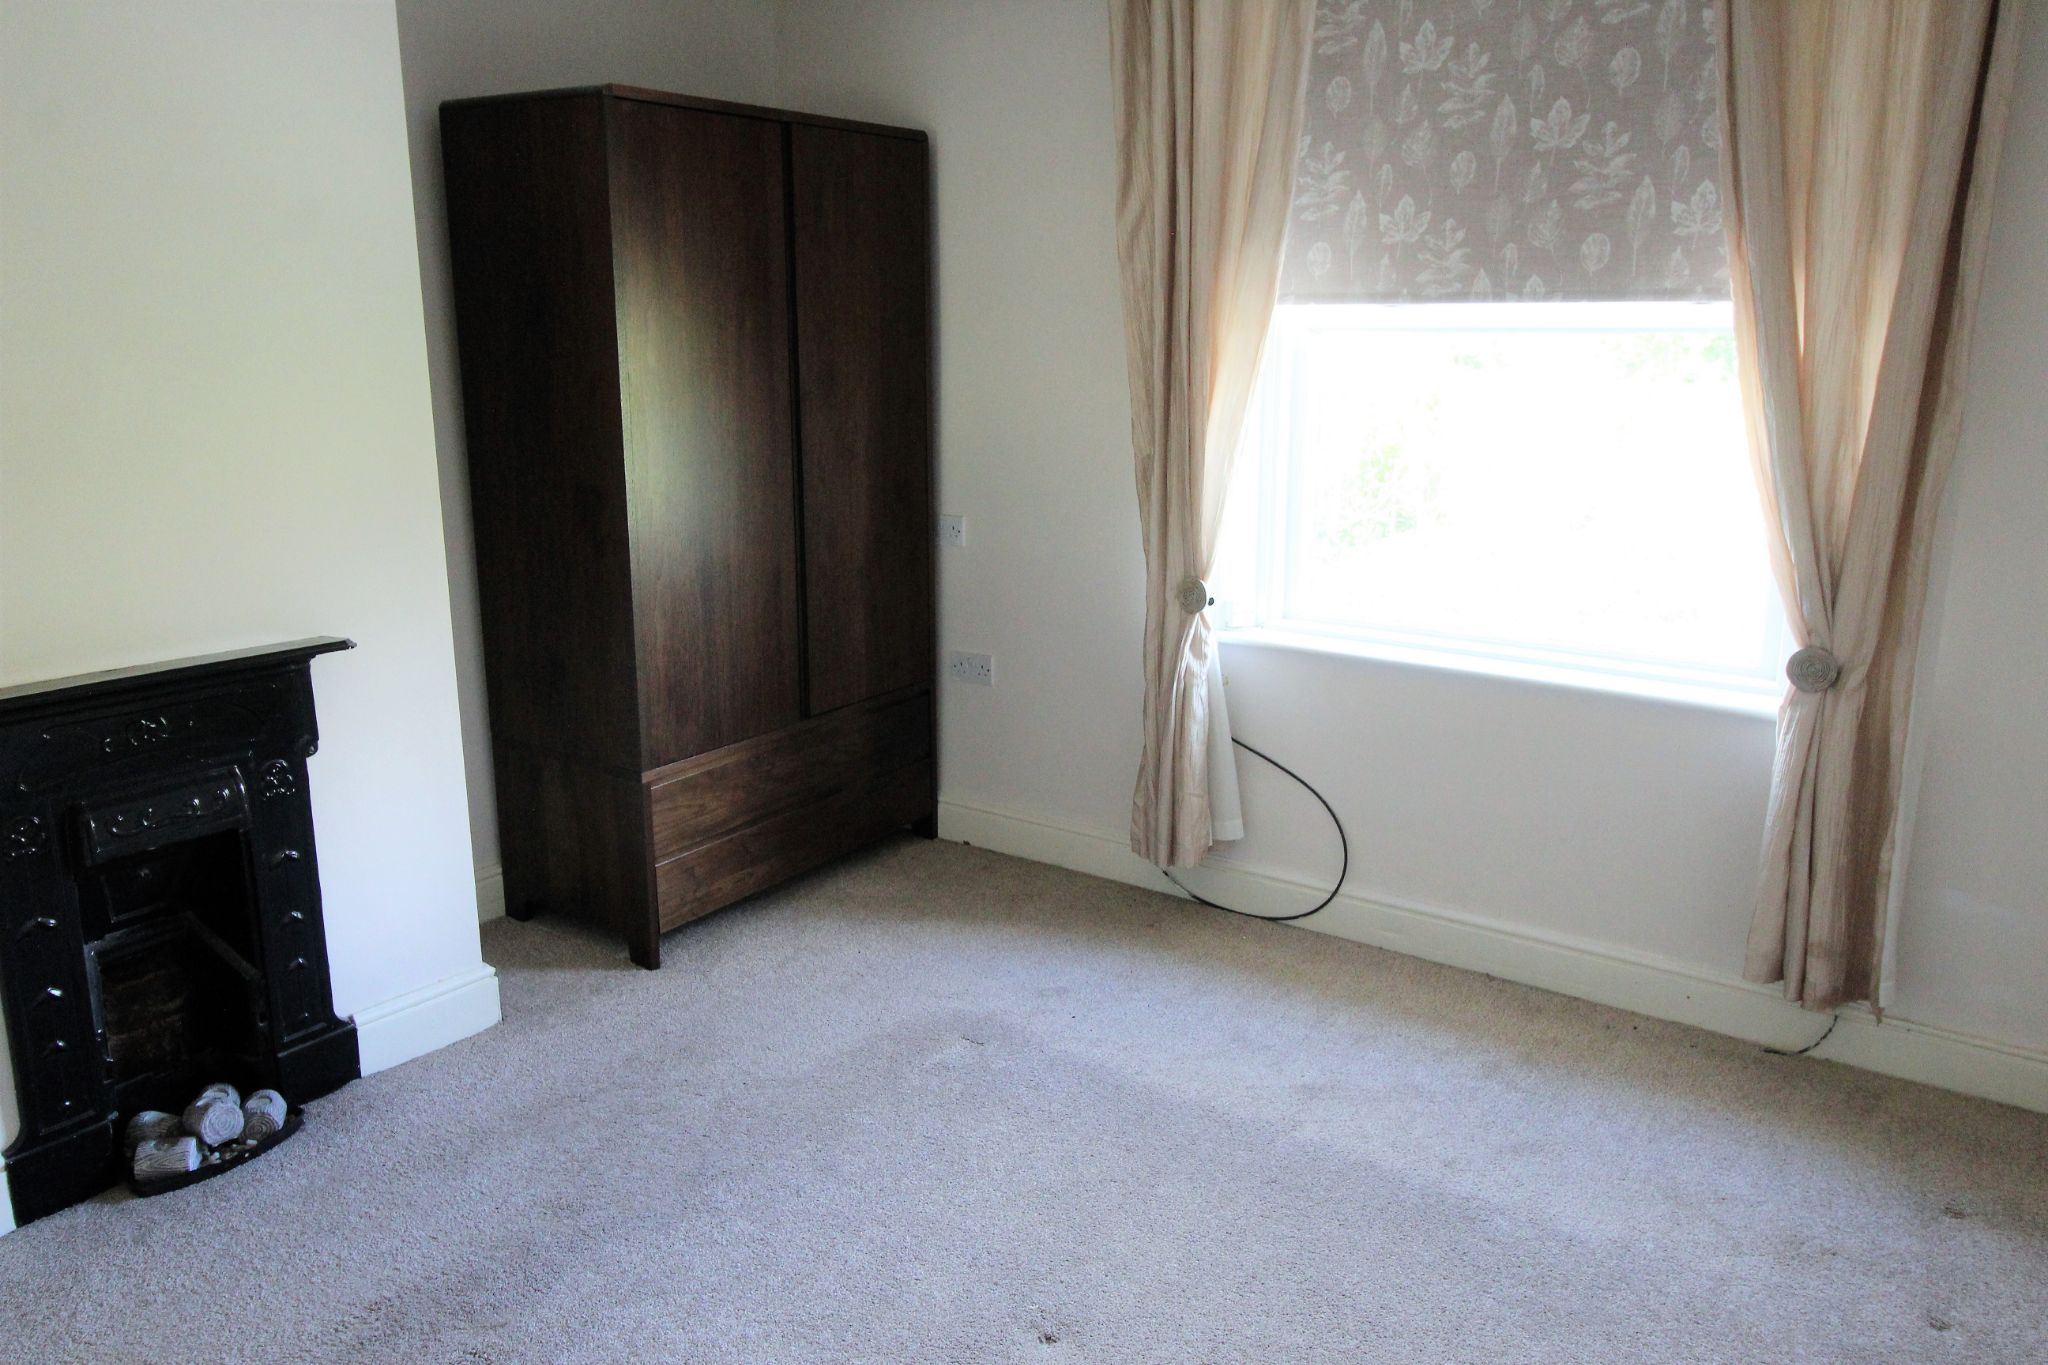 3 bedroom mid terraced house Let Agreed in Brighouse - Bedroom 1